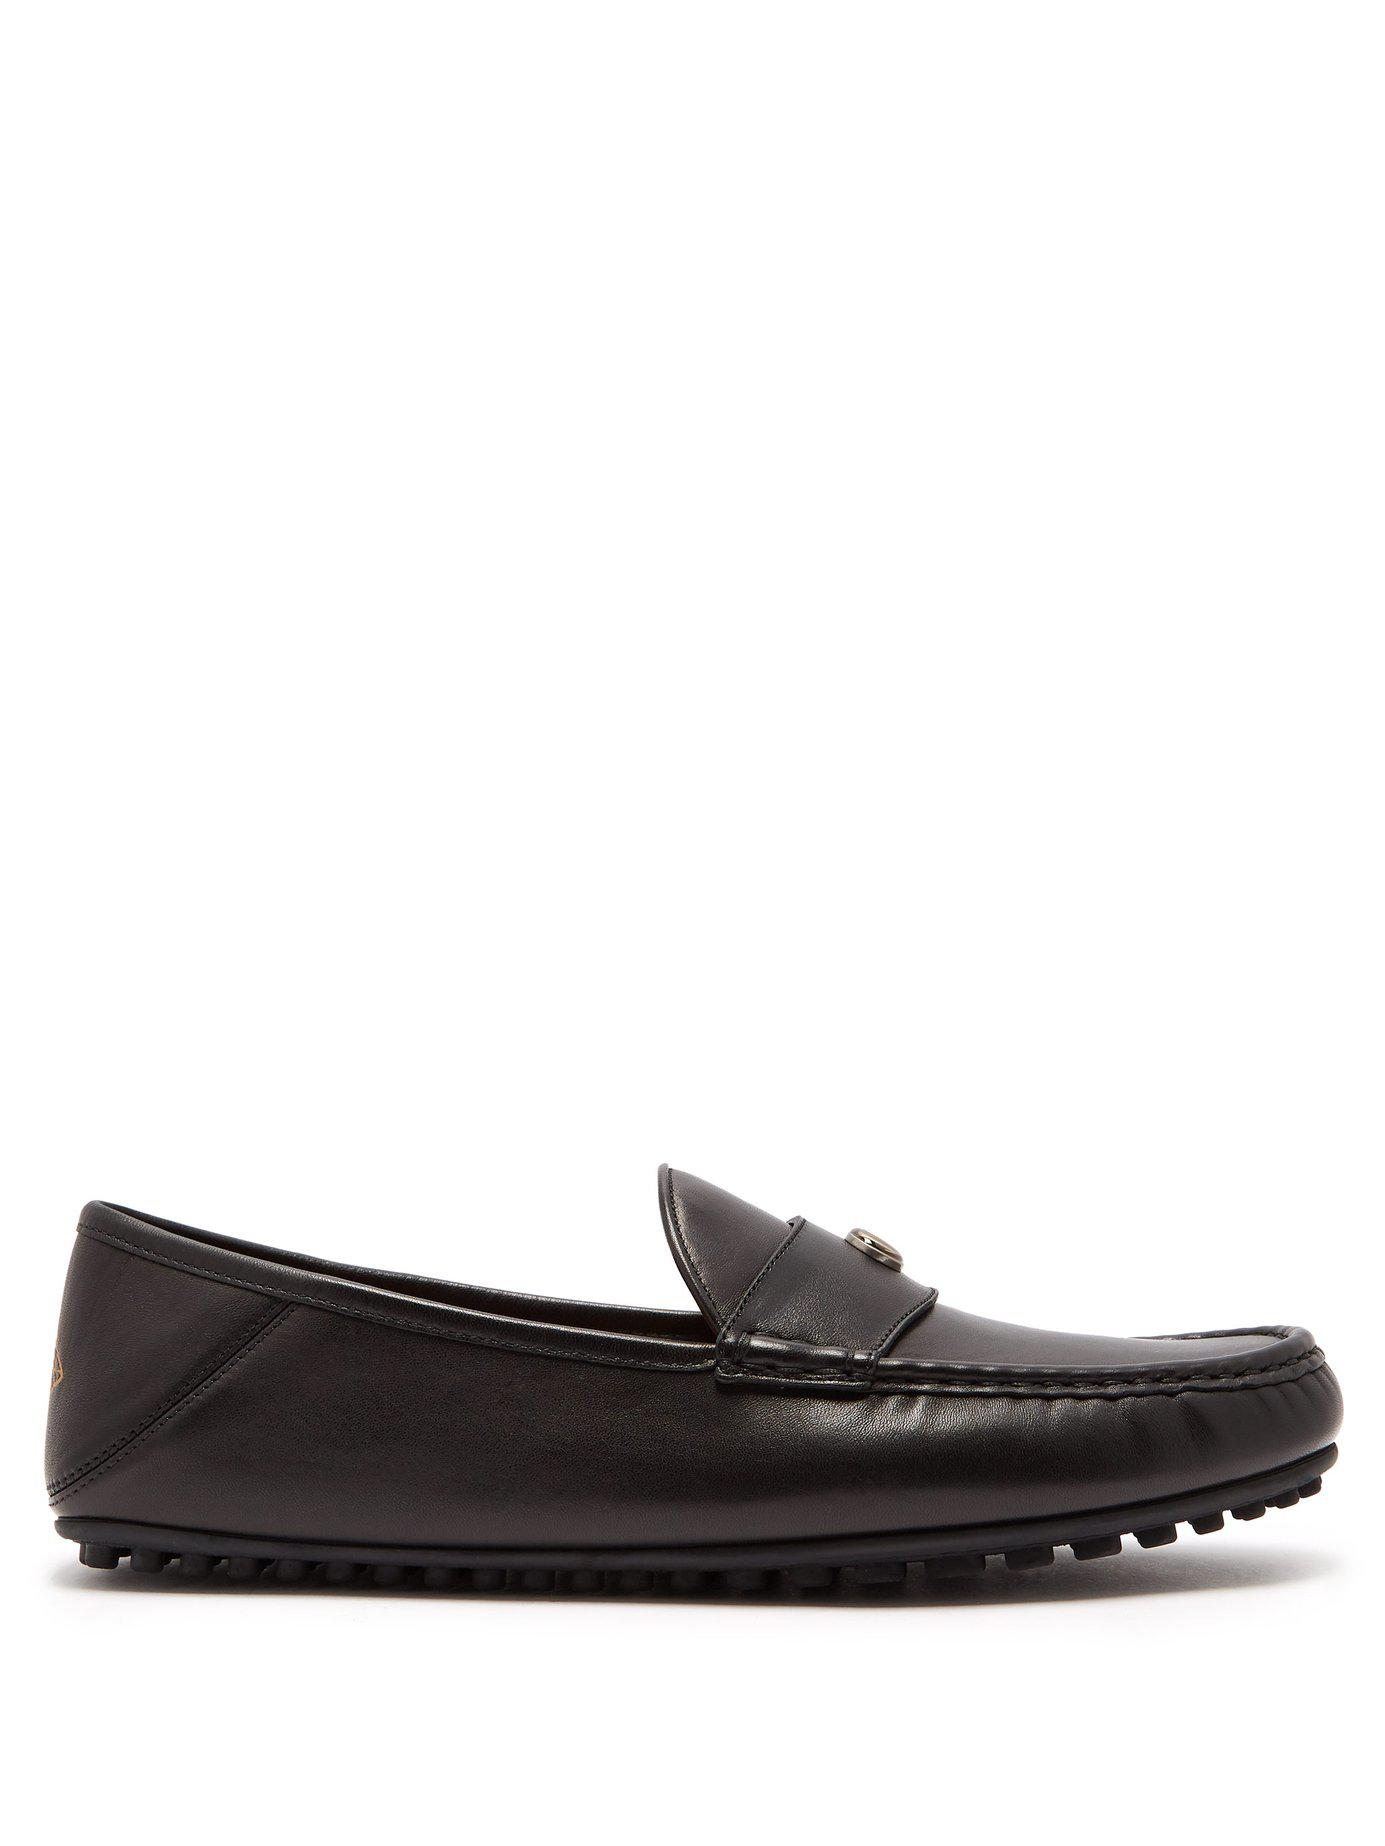 d5fa3c4b0cc Gucci Soft Leather Moccasin Loafers in Black for Men - Lyst